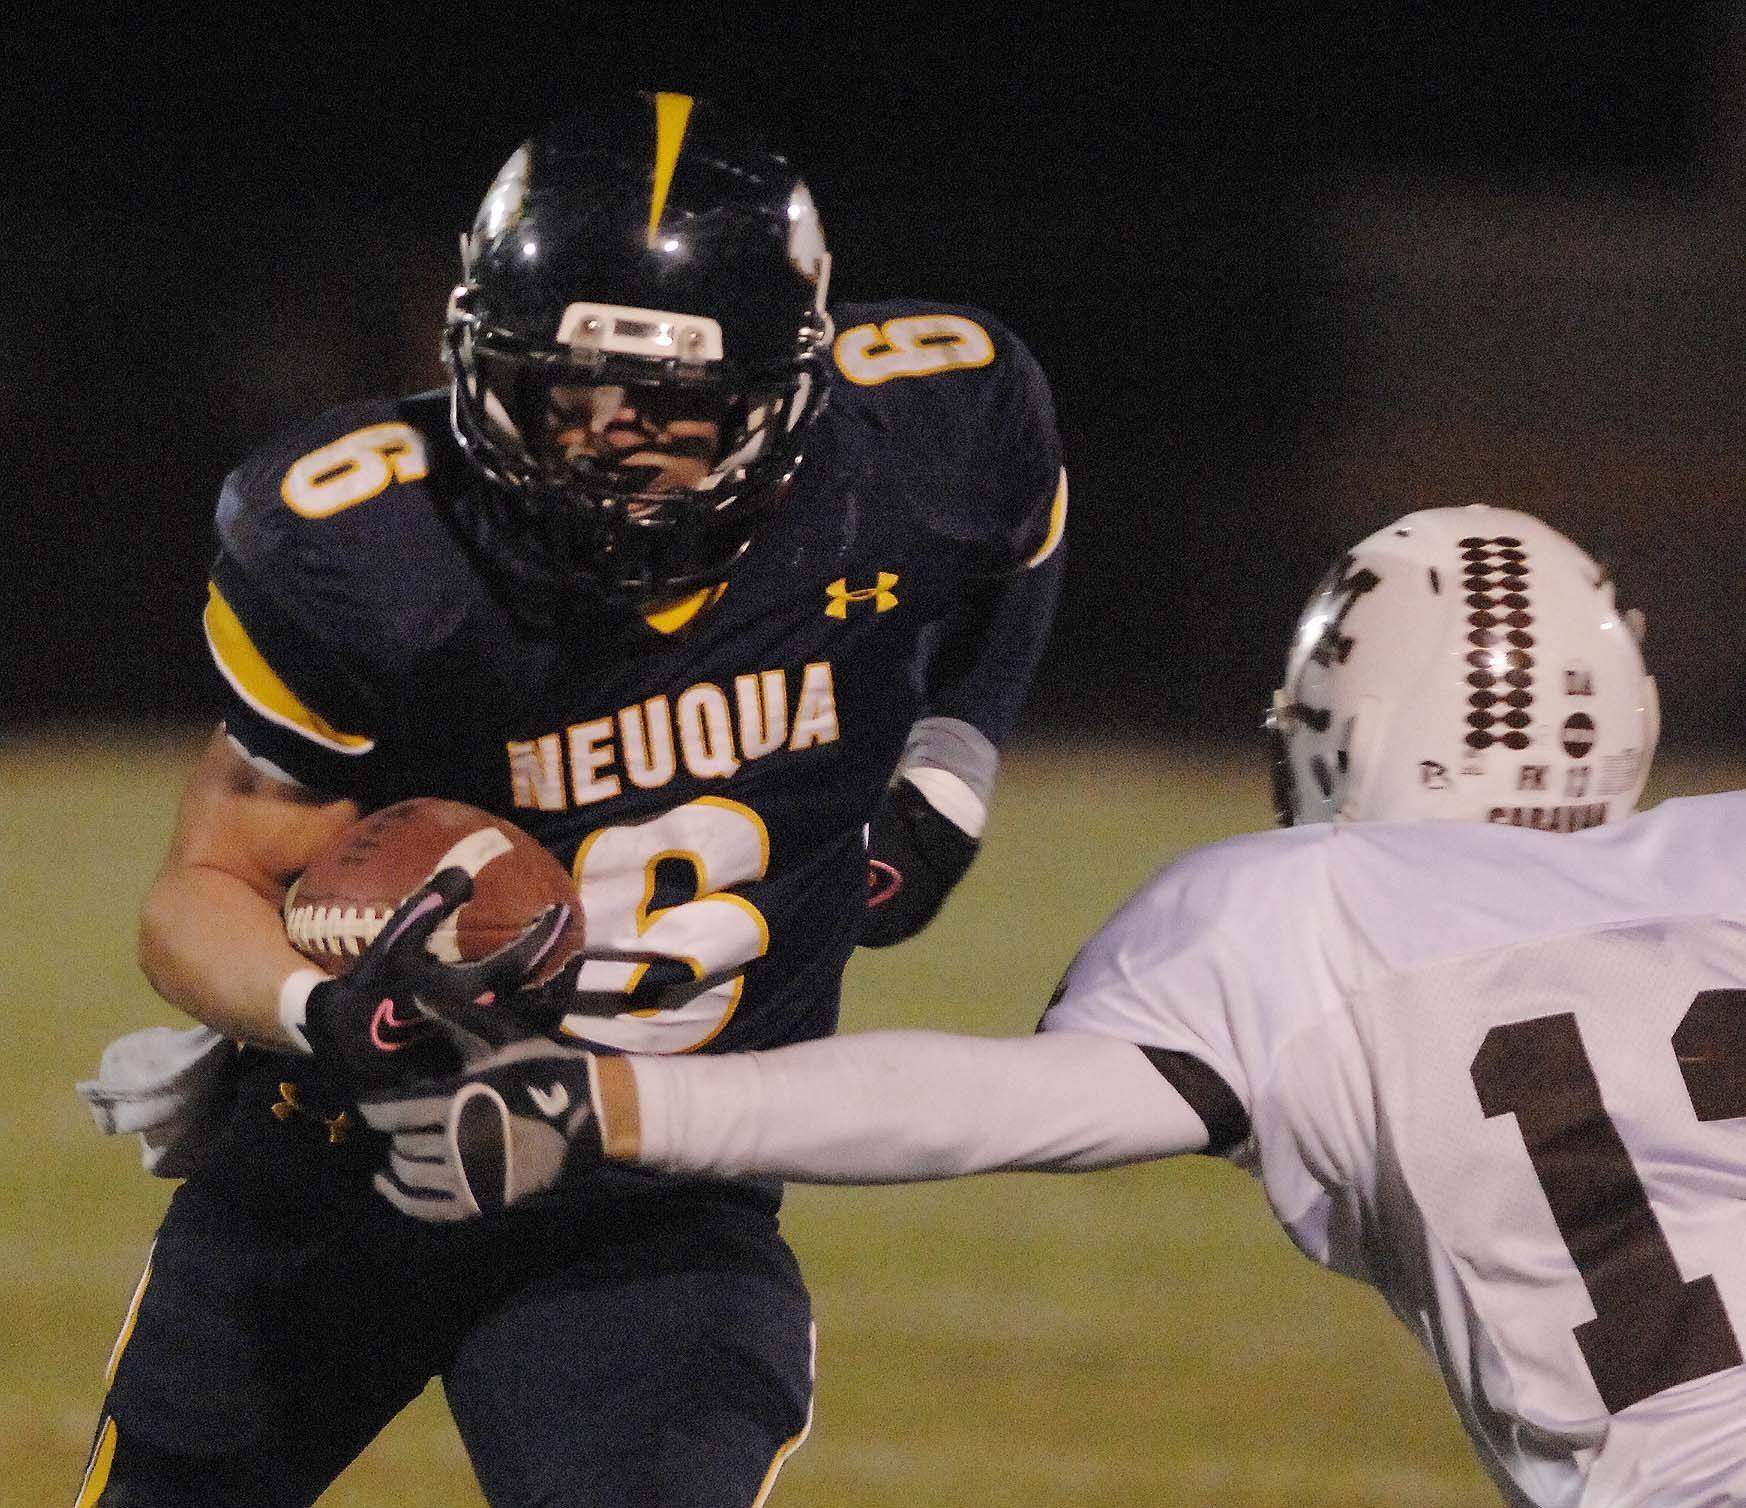 Trent Snyder of Neuqua Valley .